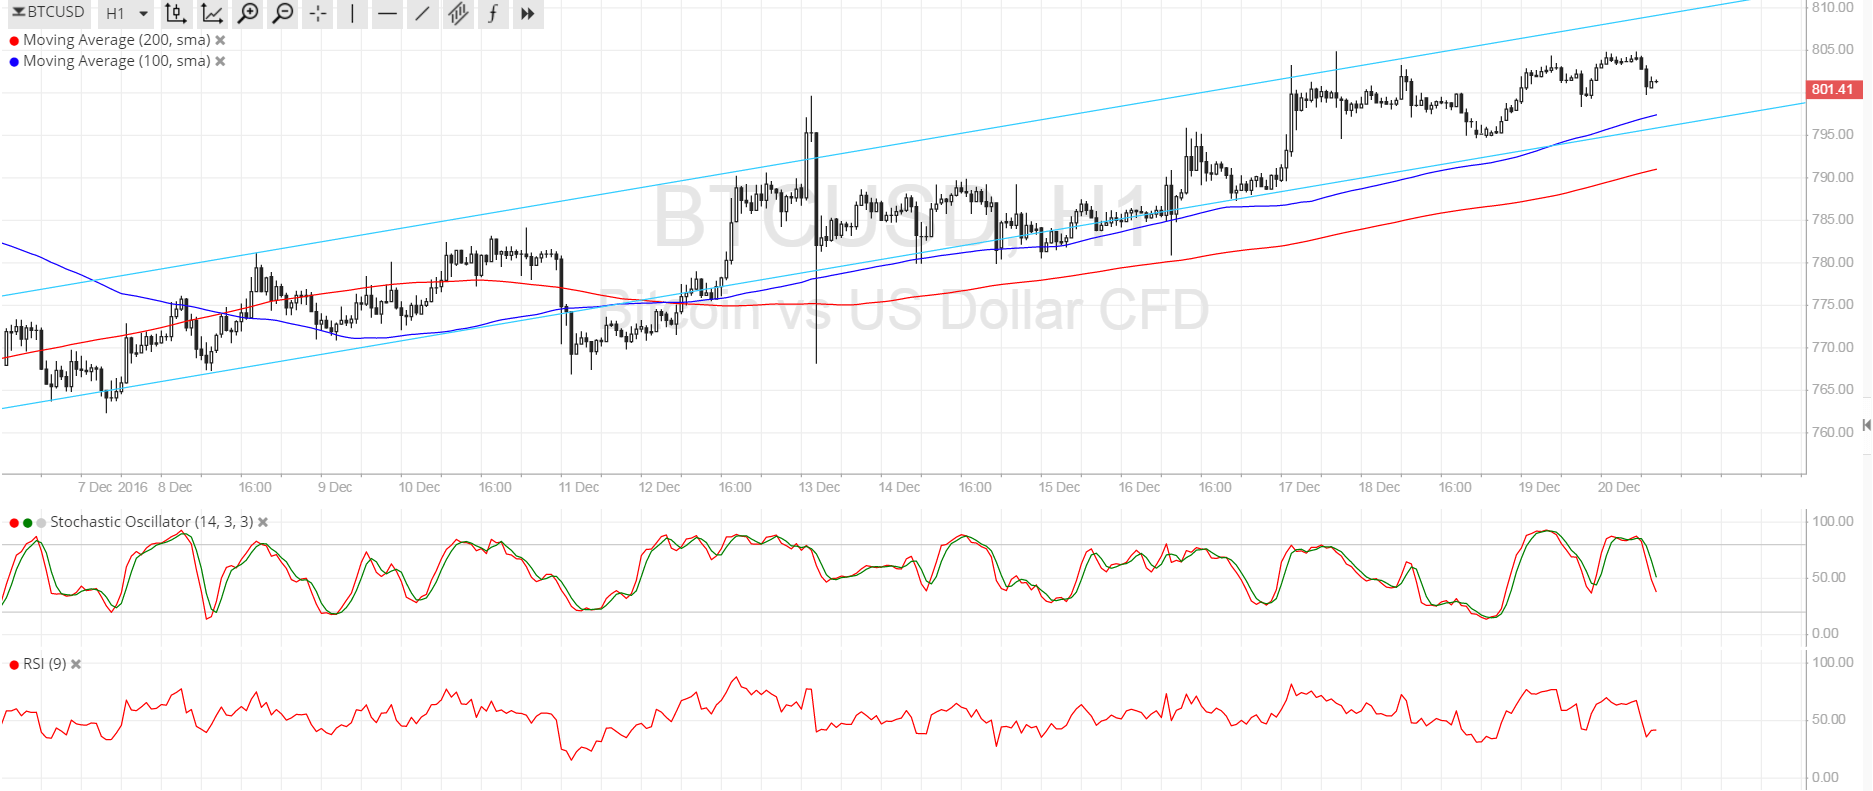 Bitcoin Price Technical Analysis for 12/20/2016 - Still Channeling Higher!